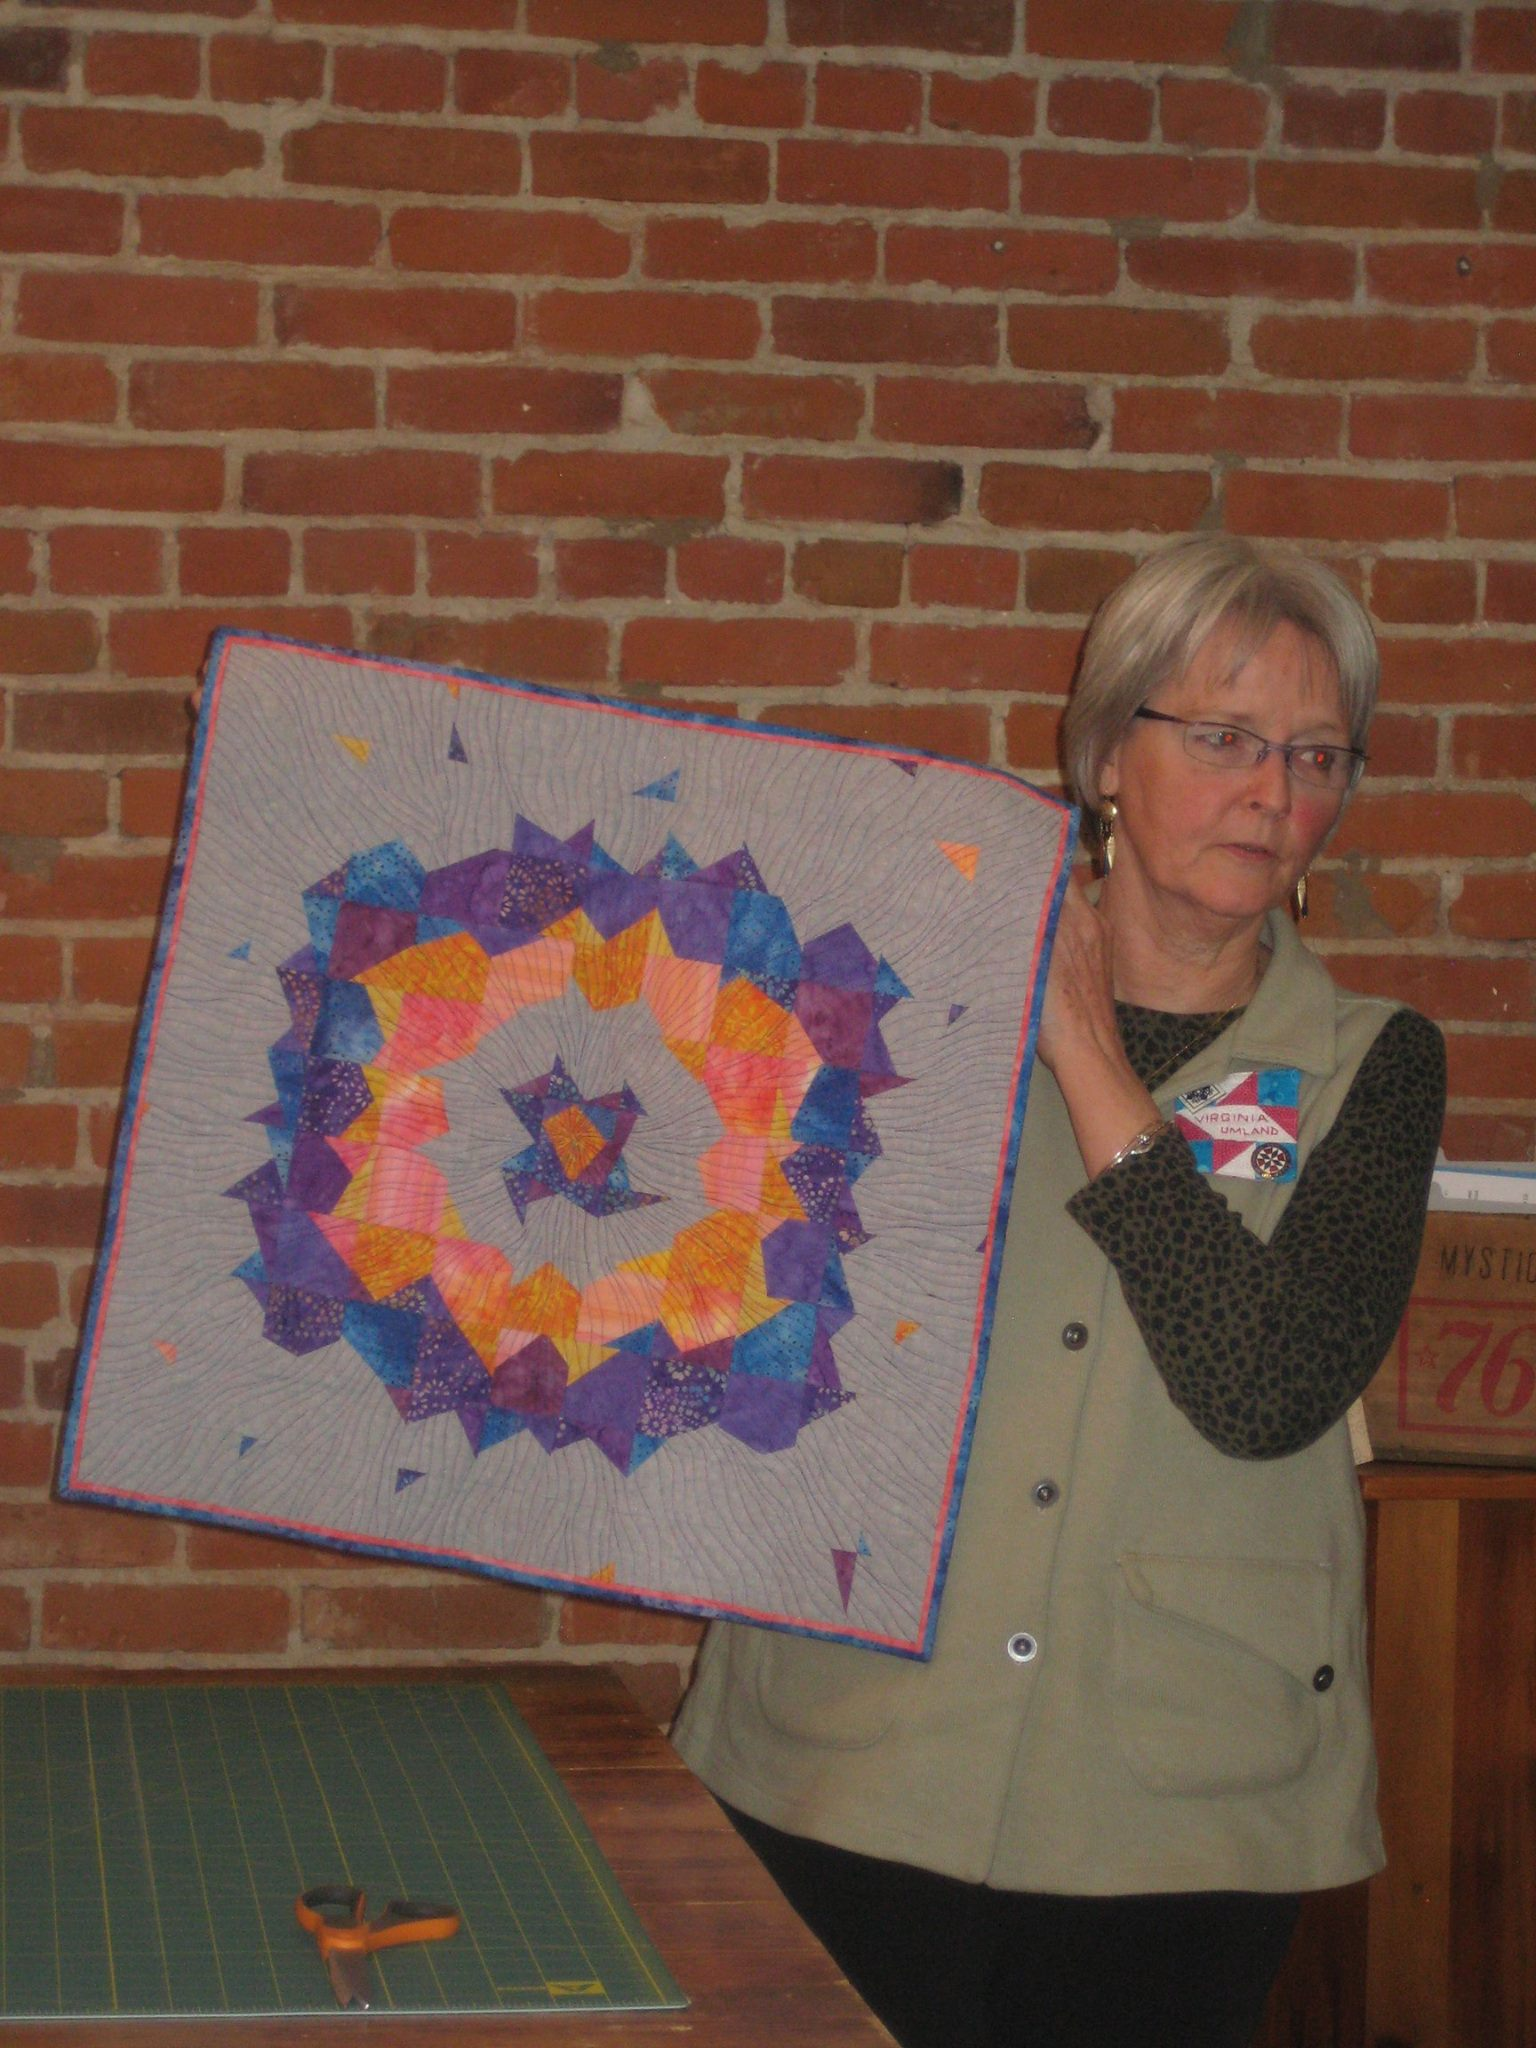 Virginia's Supernova quilt won a blue ribbon!